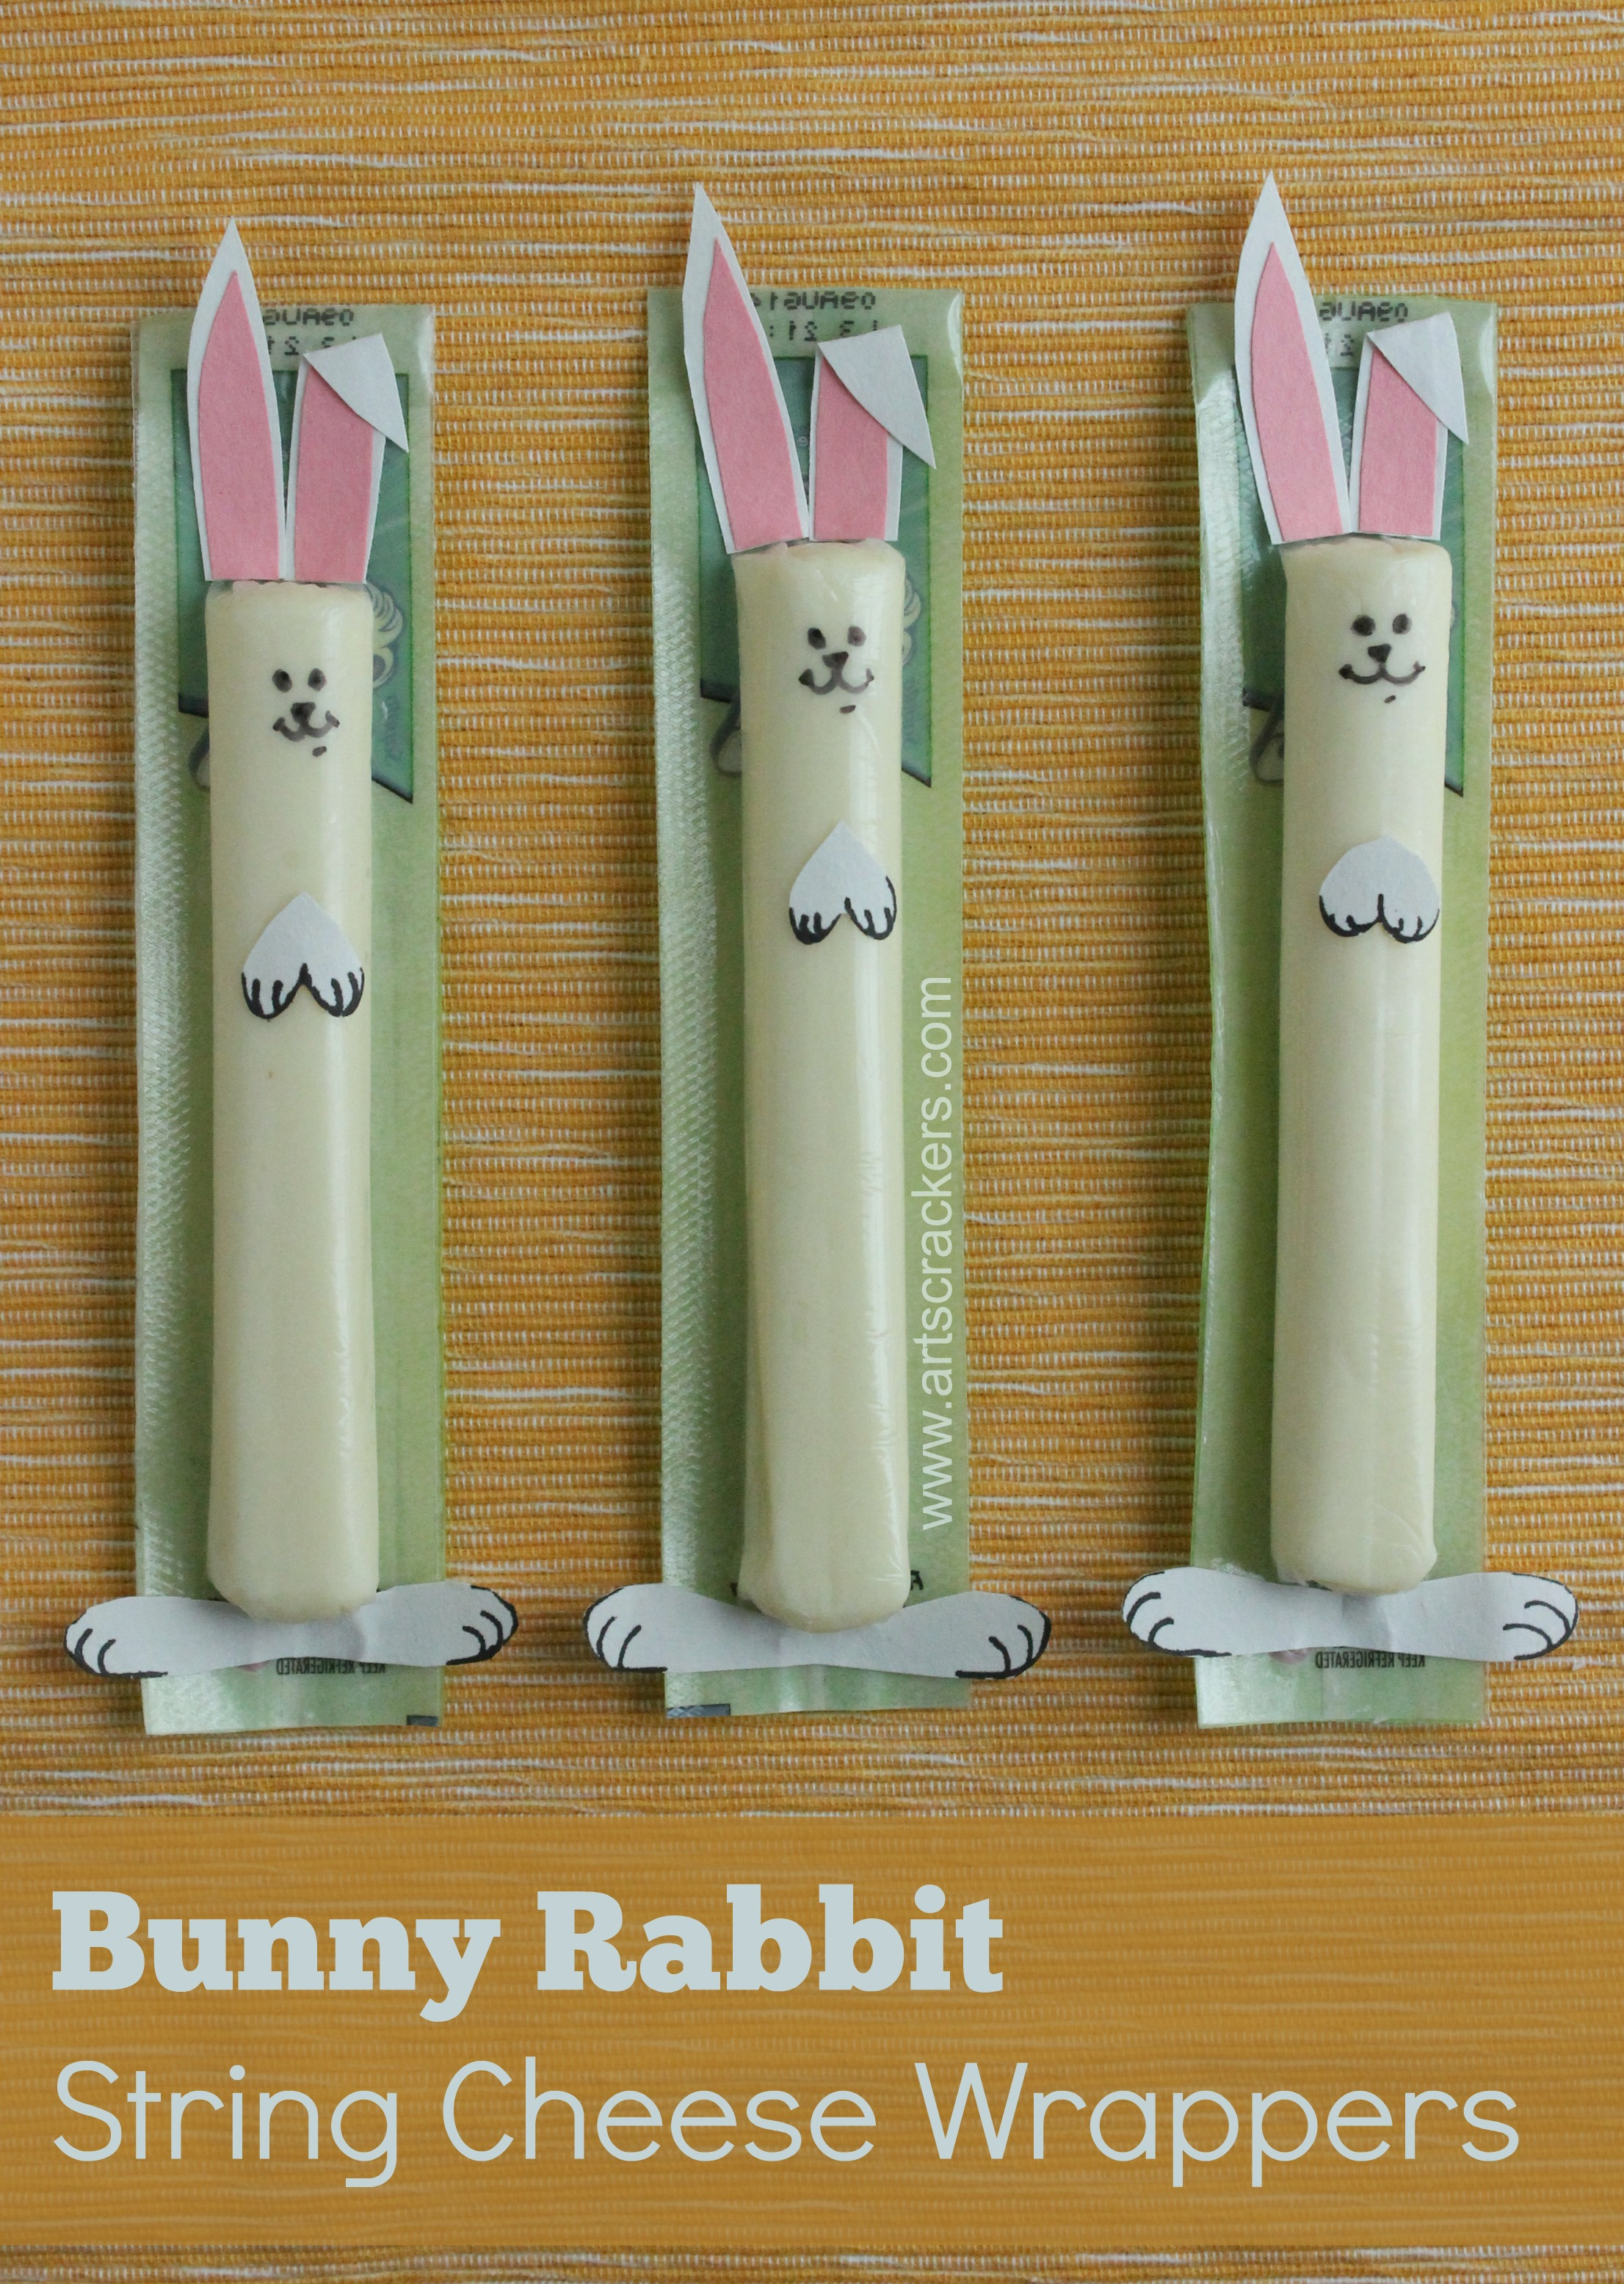 Carrot clipart string cheese Cheese Bunny Rabbit String Cheese